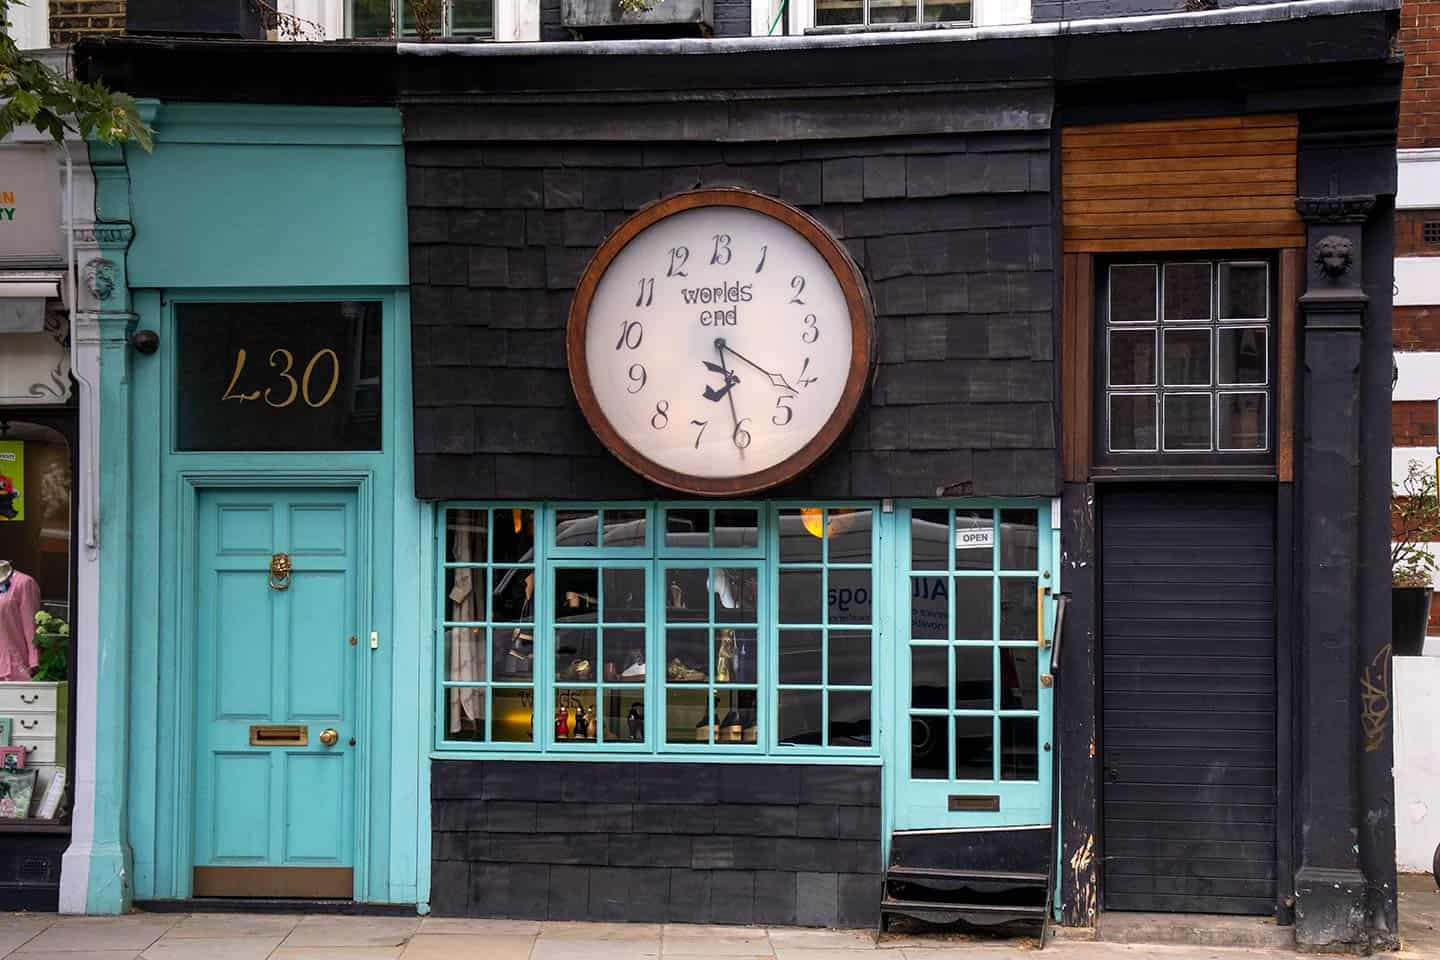 Image of Vivienne Westwood's World's End shop on King's Road, Chelsea